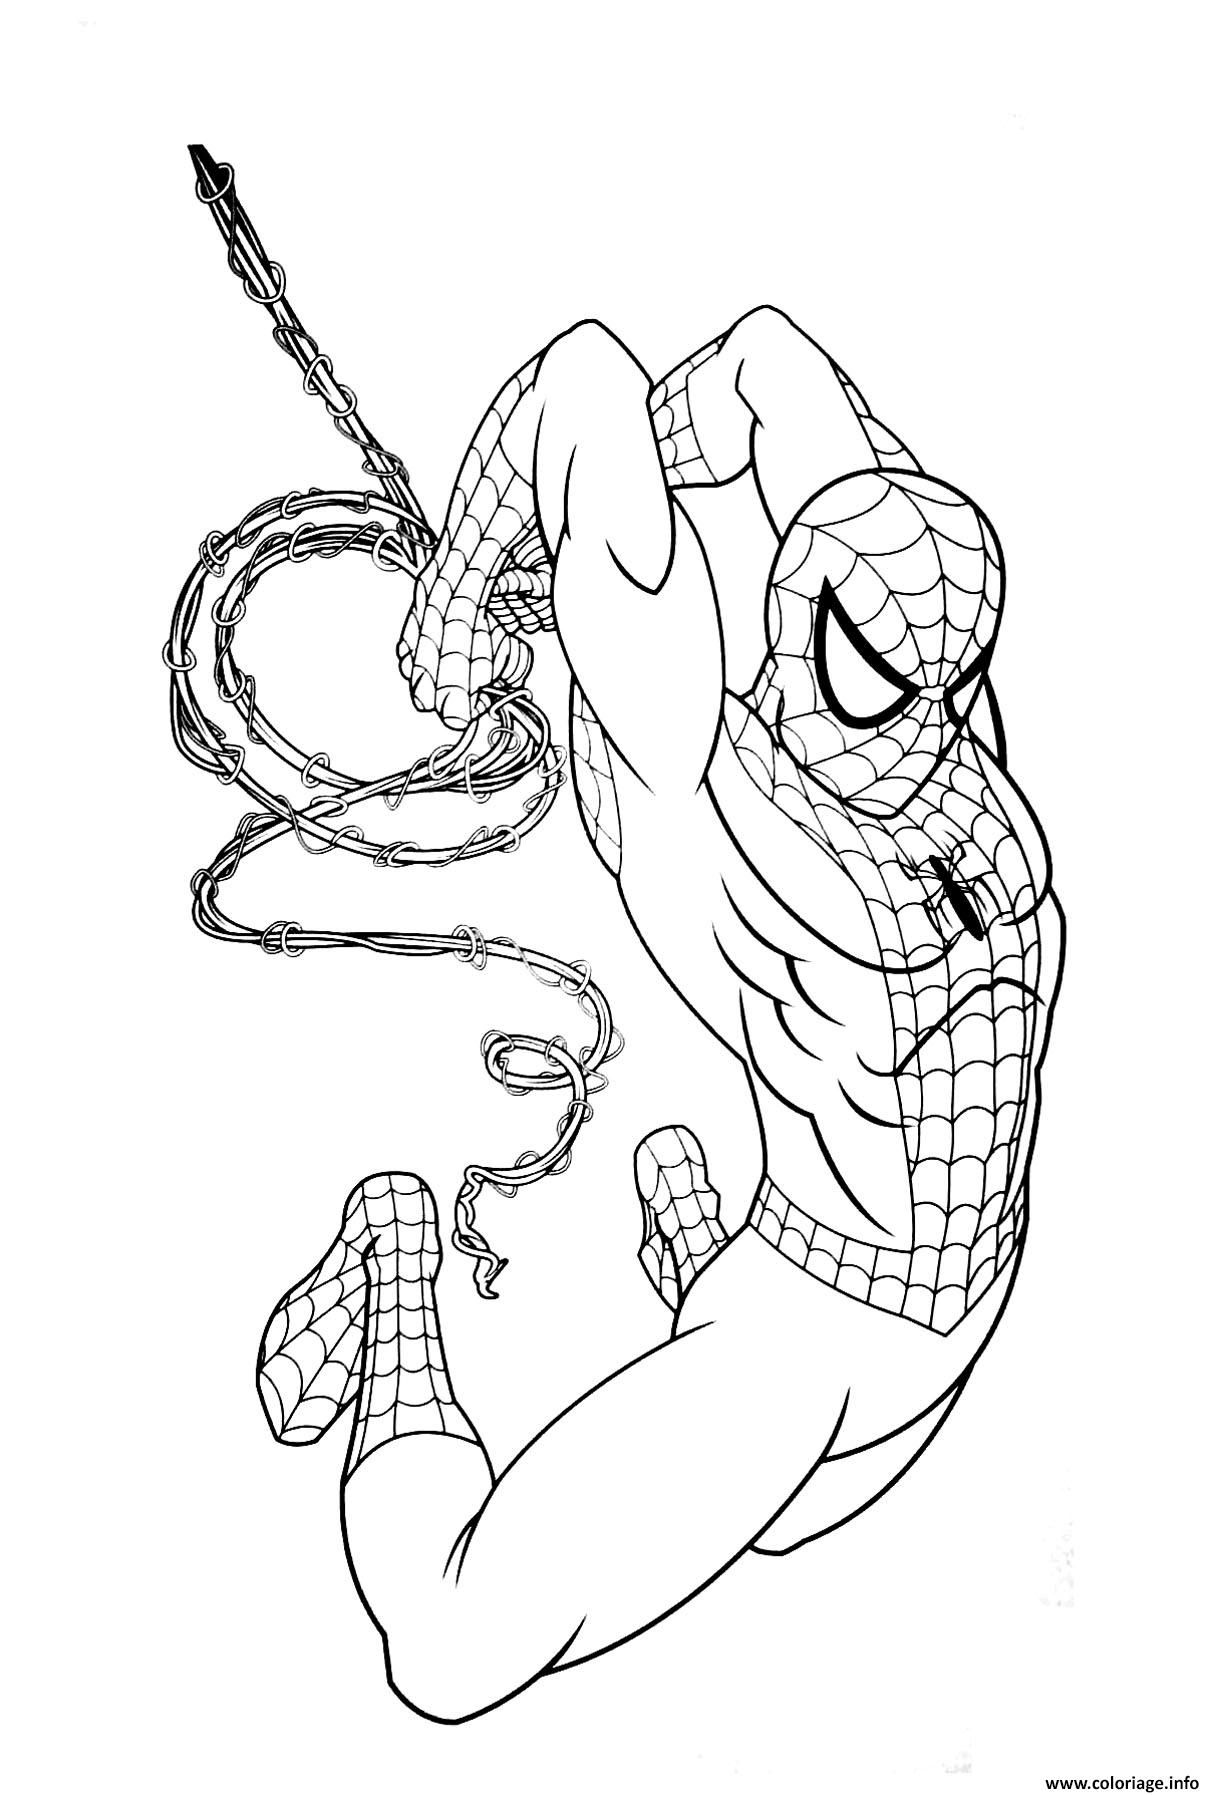 Coloriage Garcon Super Heros Marvel Spiderman Dessin à Imprimer